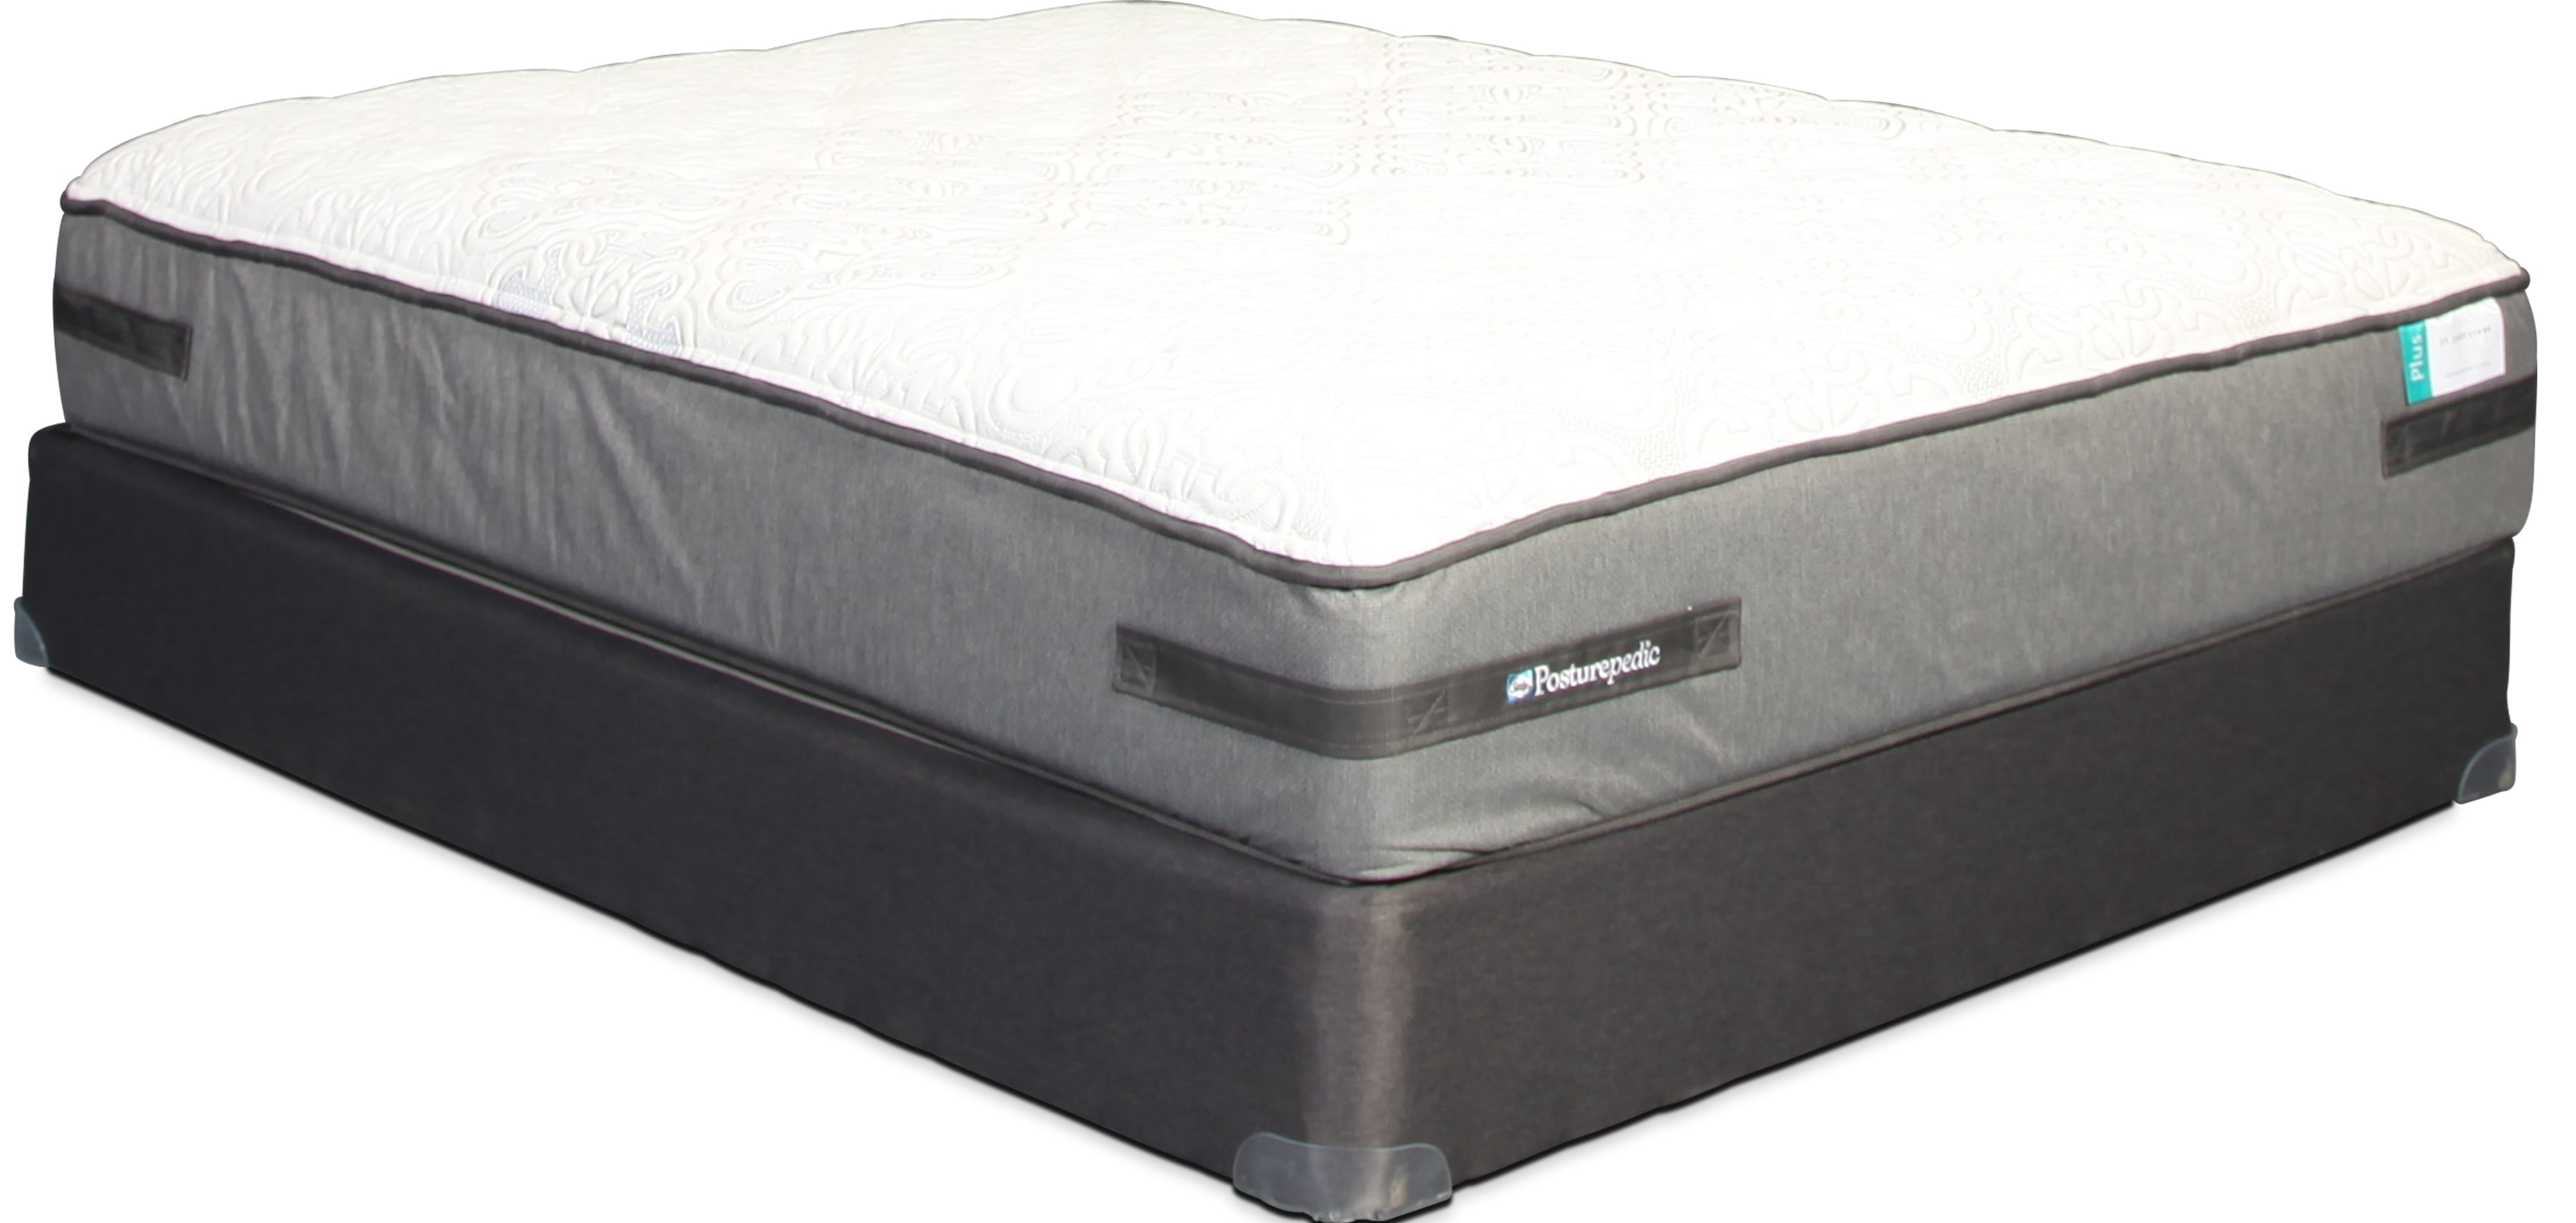 Sealy St. James Park Cushion Firm California King Mattress and Split Boxsprings